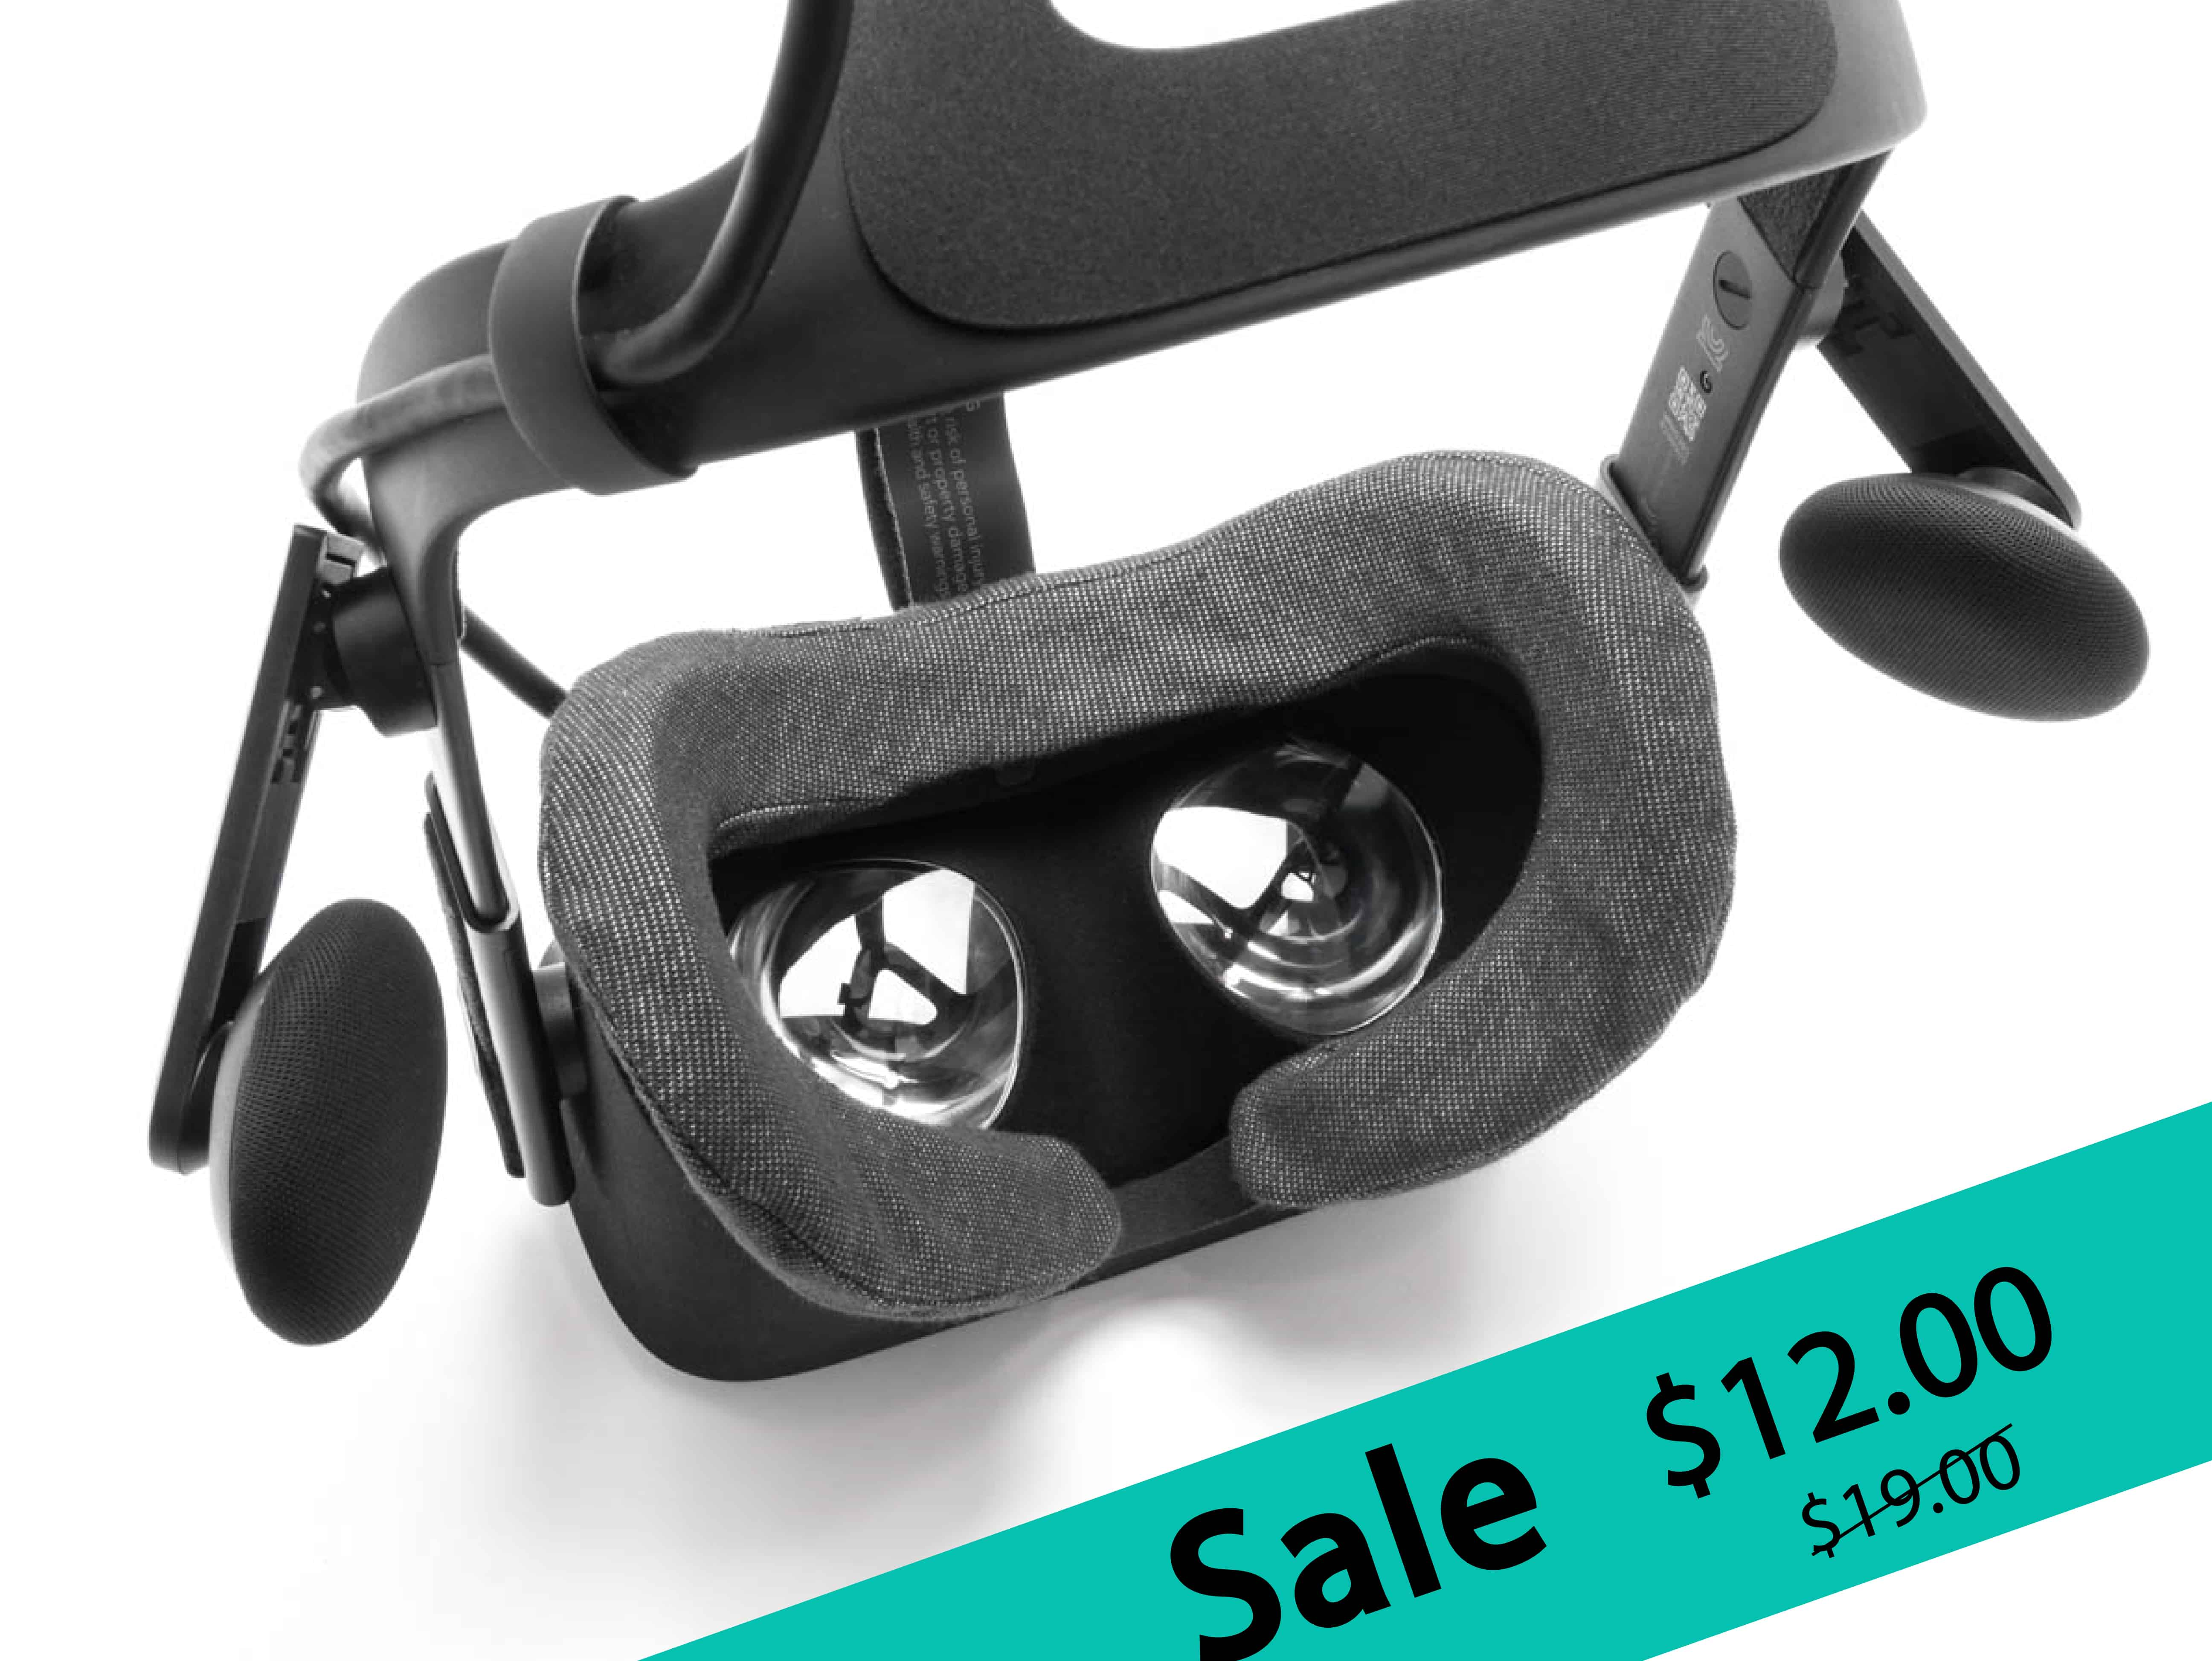 Oculus Rift VR Cover Sale